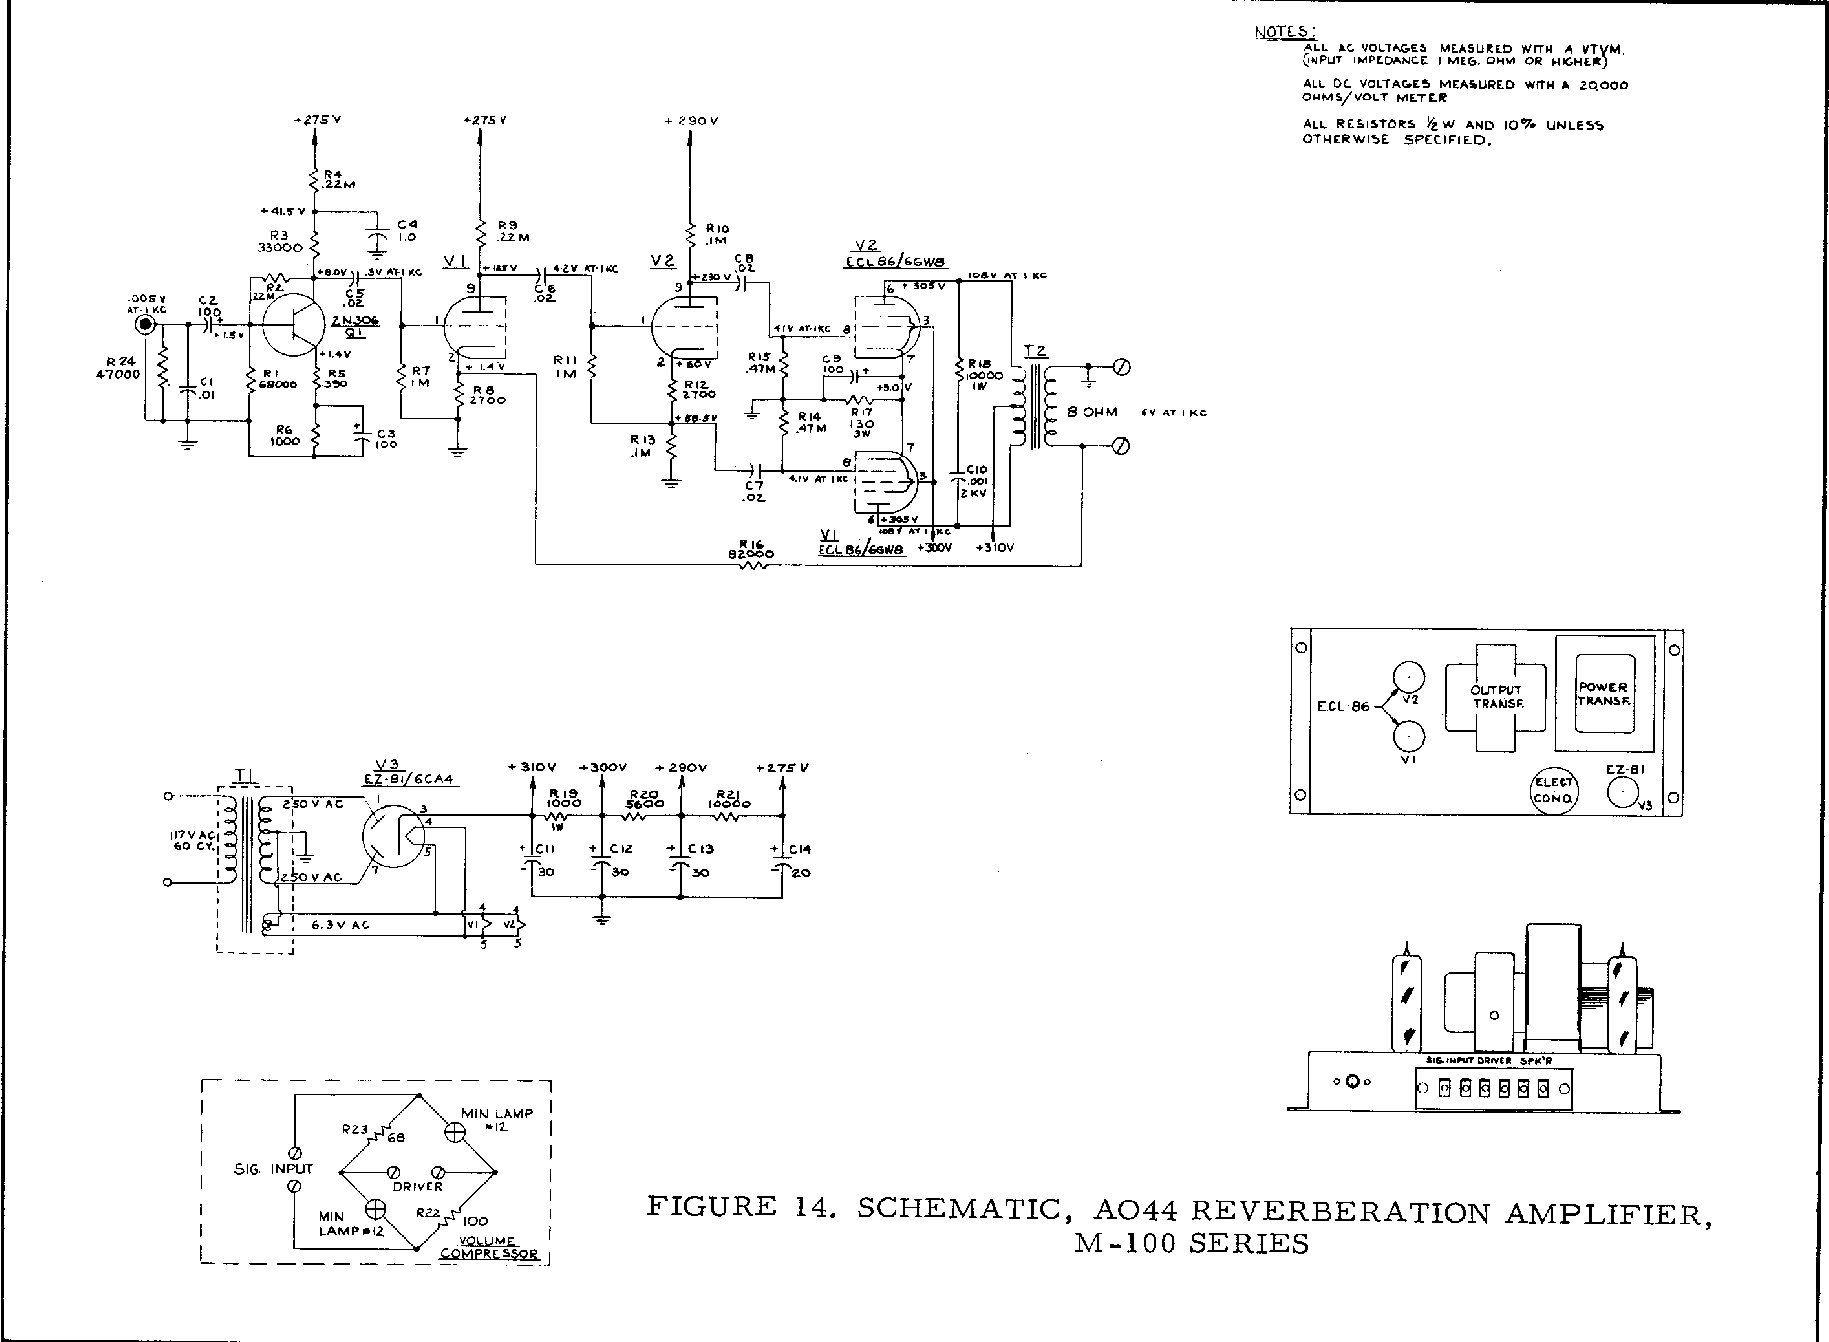 100 Wiring Schematics Diagrams Instructions Tarp Gear Motor 12 Volt Diagram Hammond Here And Elsewhere On The M100a100 Ao44 Reverb Schematic